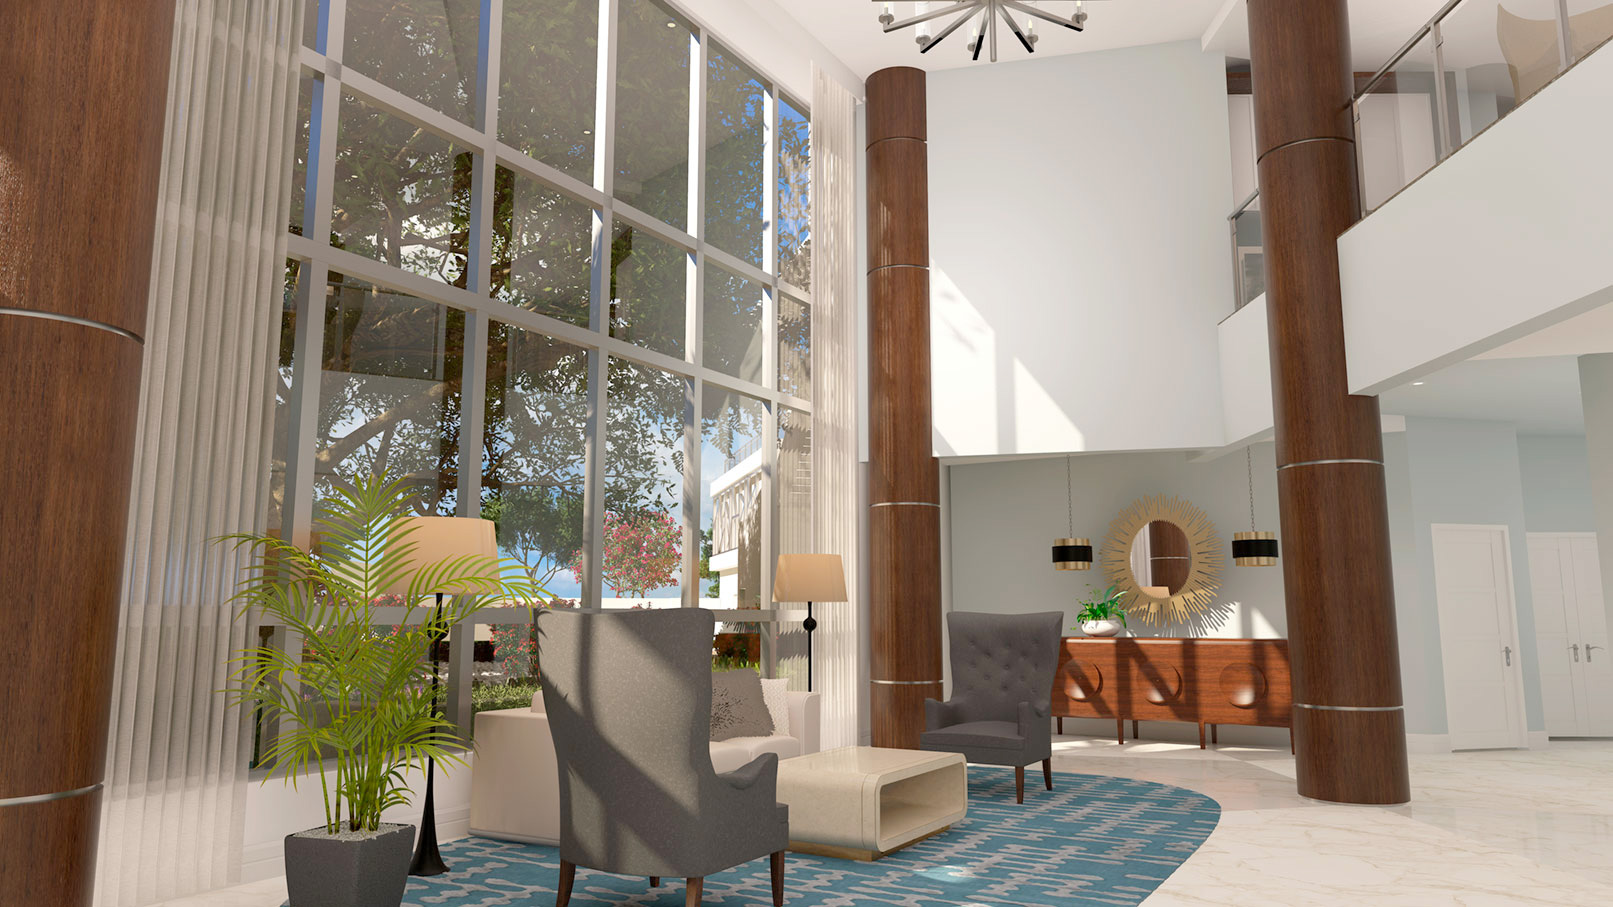 The Virage Bayshore clubhouse interior photo